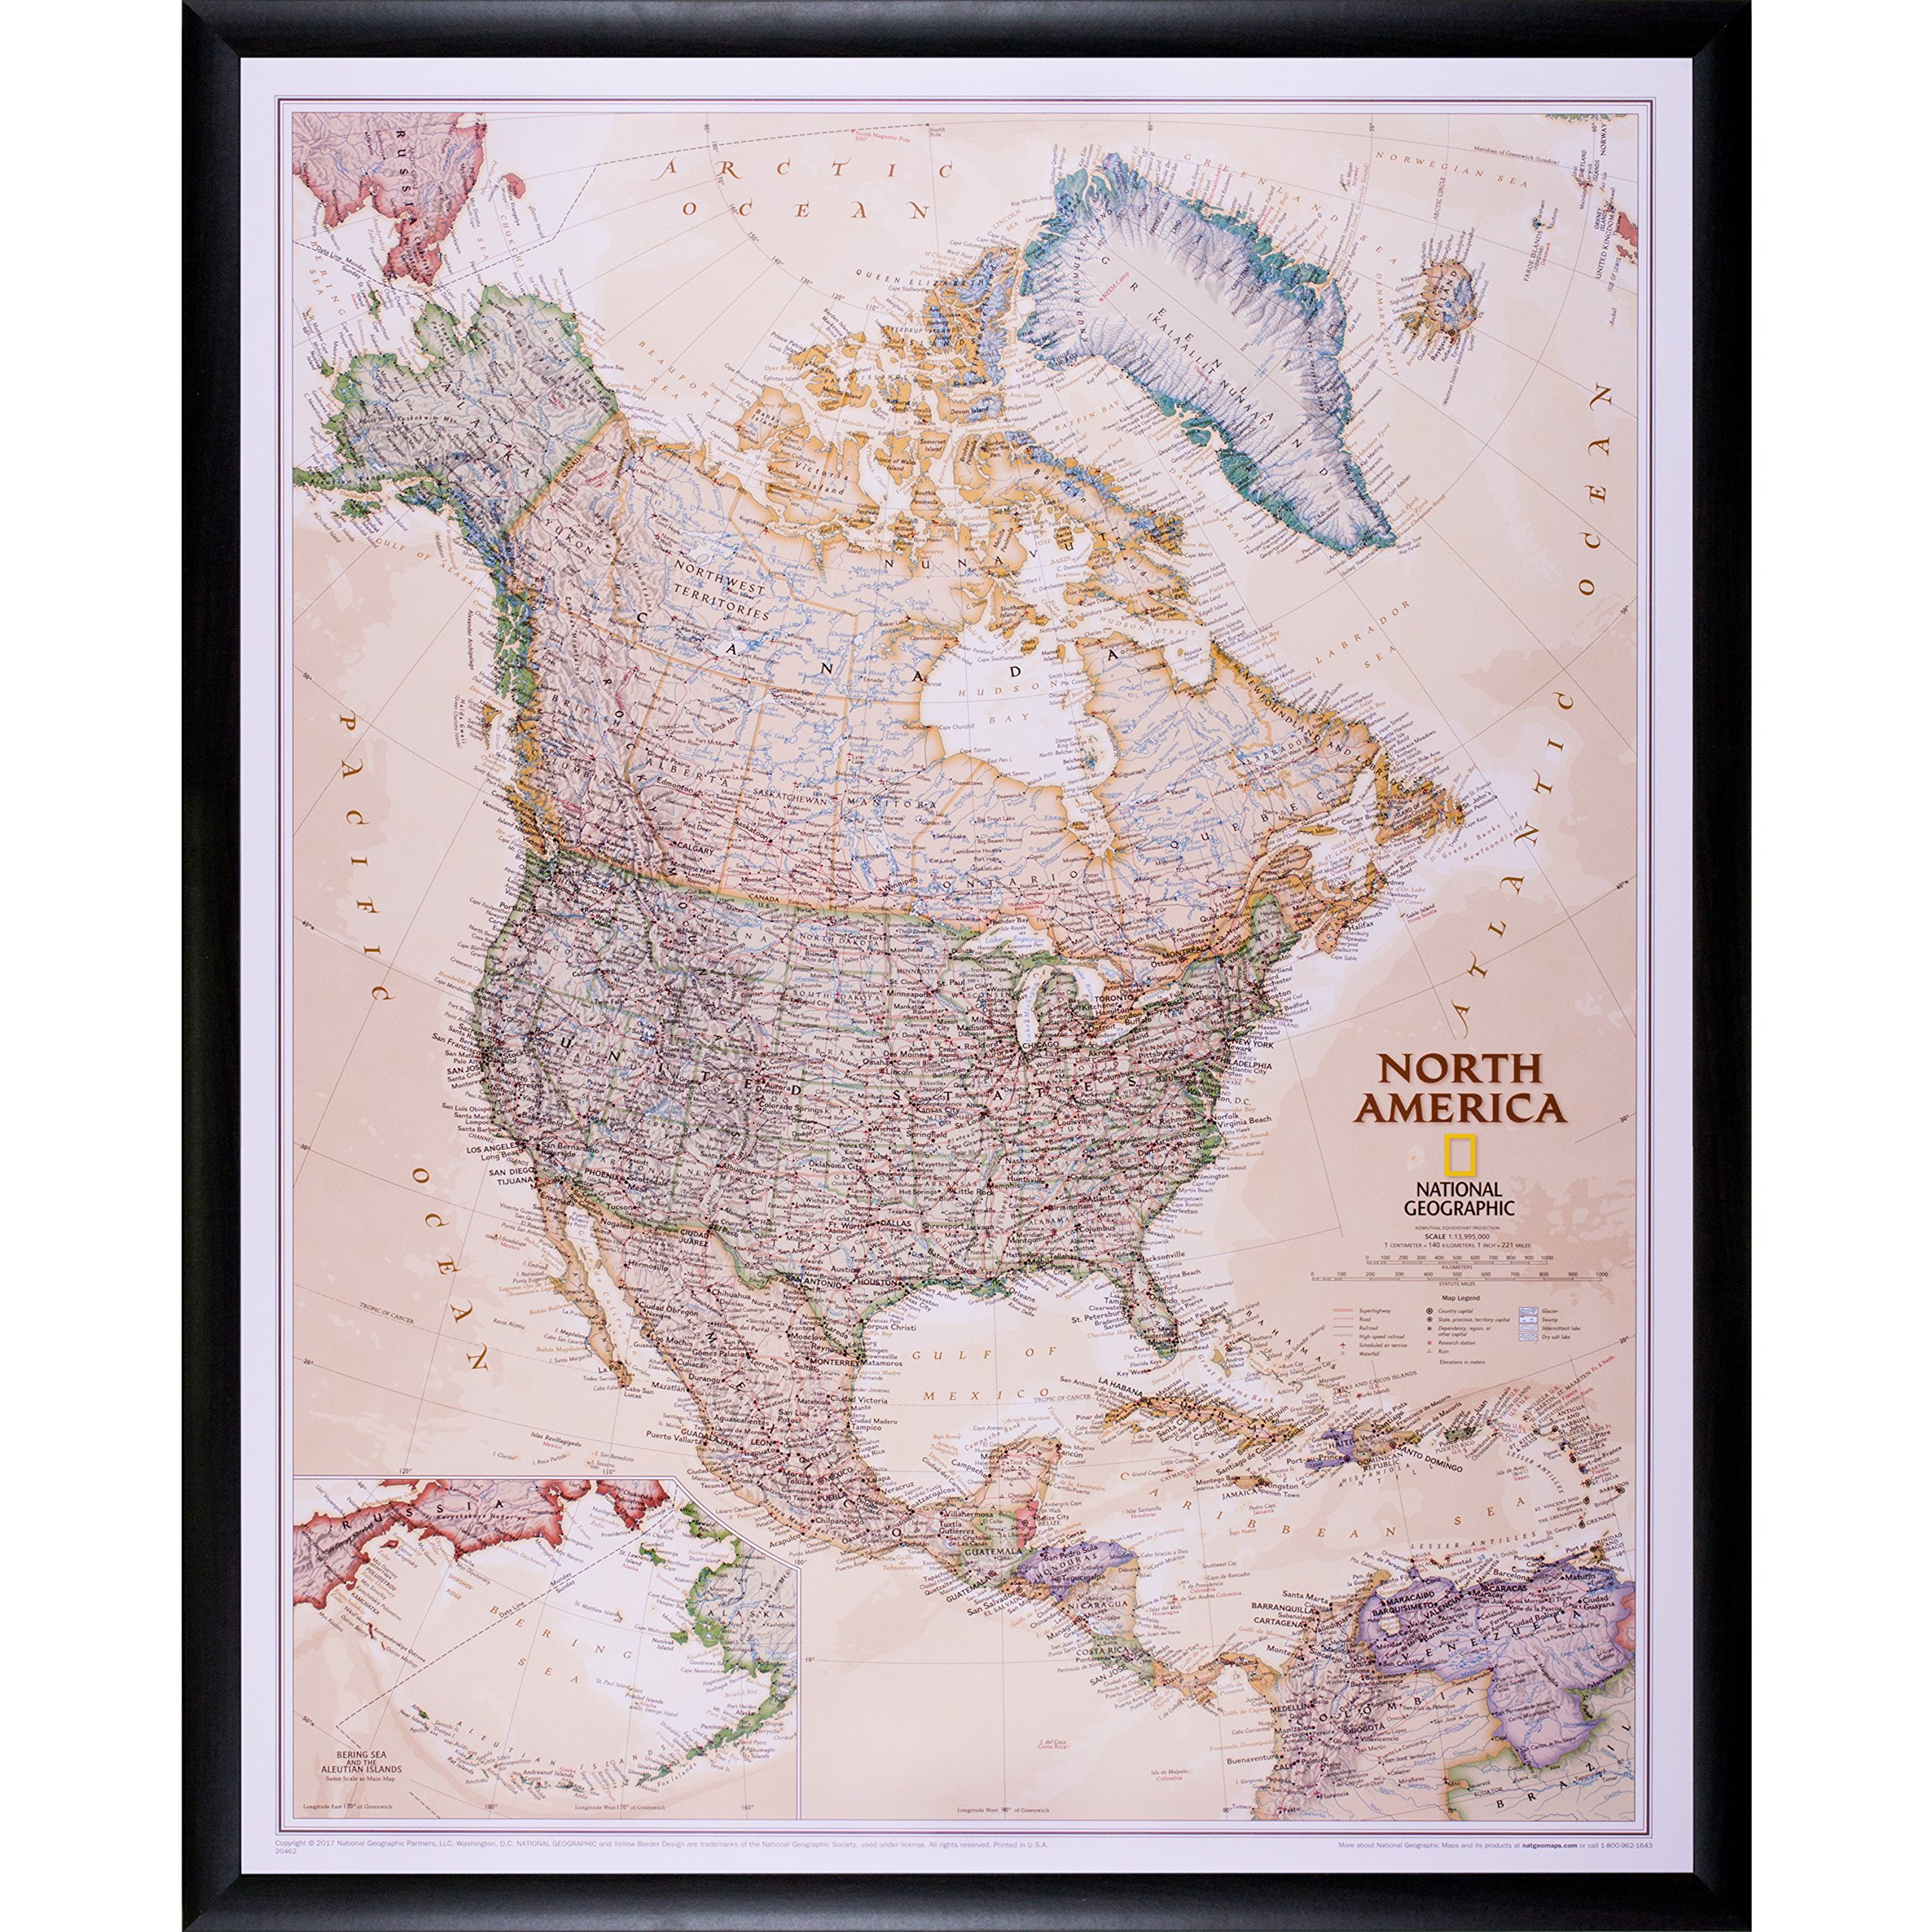 Craig Frames Wayfarer, Executive North America Push Pin Travel Map, Dark Brown Frame and Pins, 24 x 30 Inch